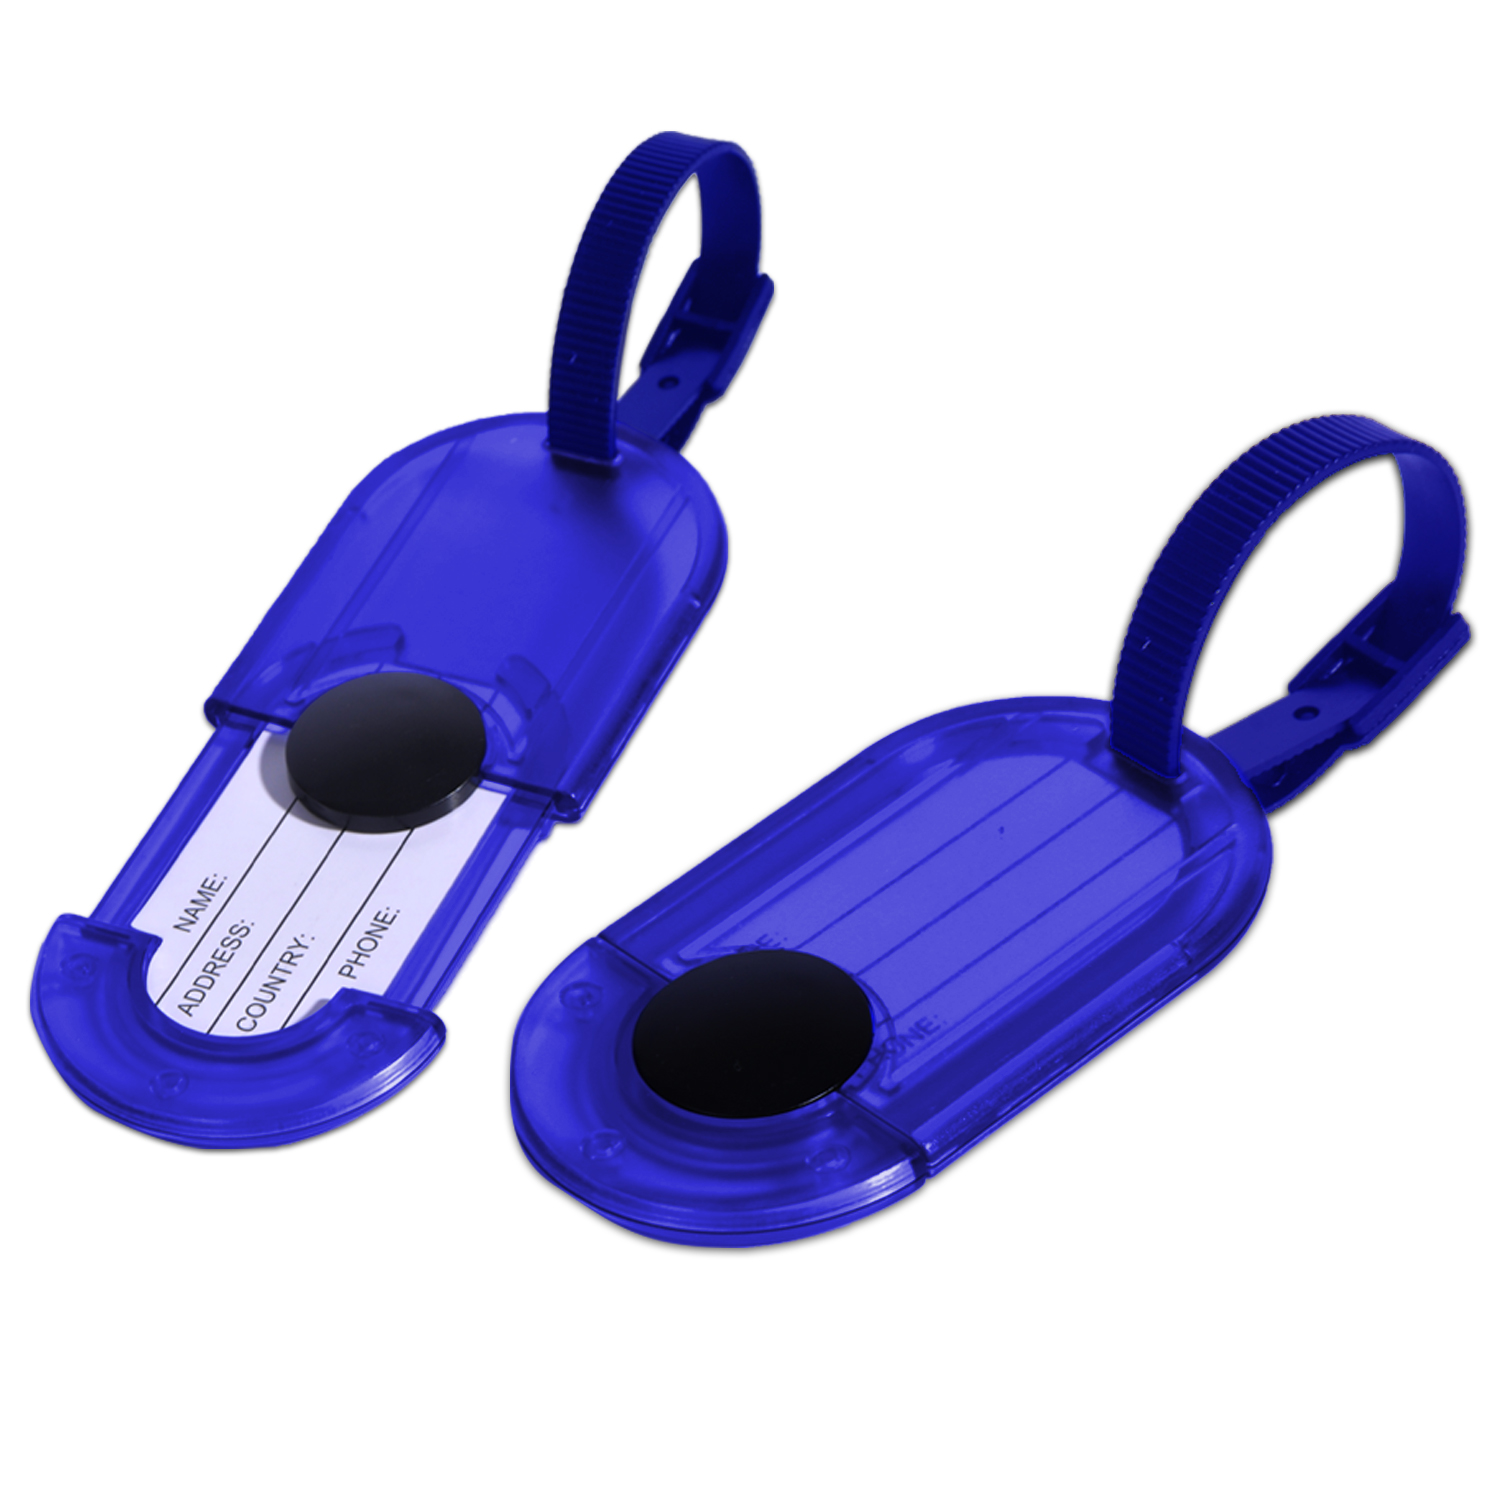 Miami CarryOn Water Resistant Luggage Tag Holders / Travel ID Bag Tags - 2 Set (Blue)